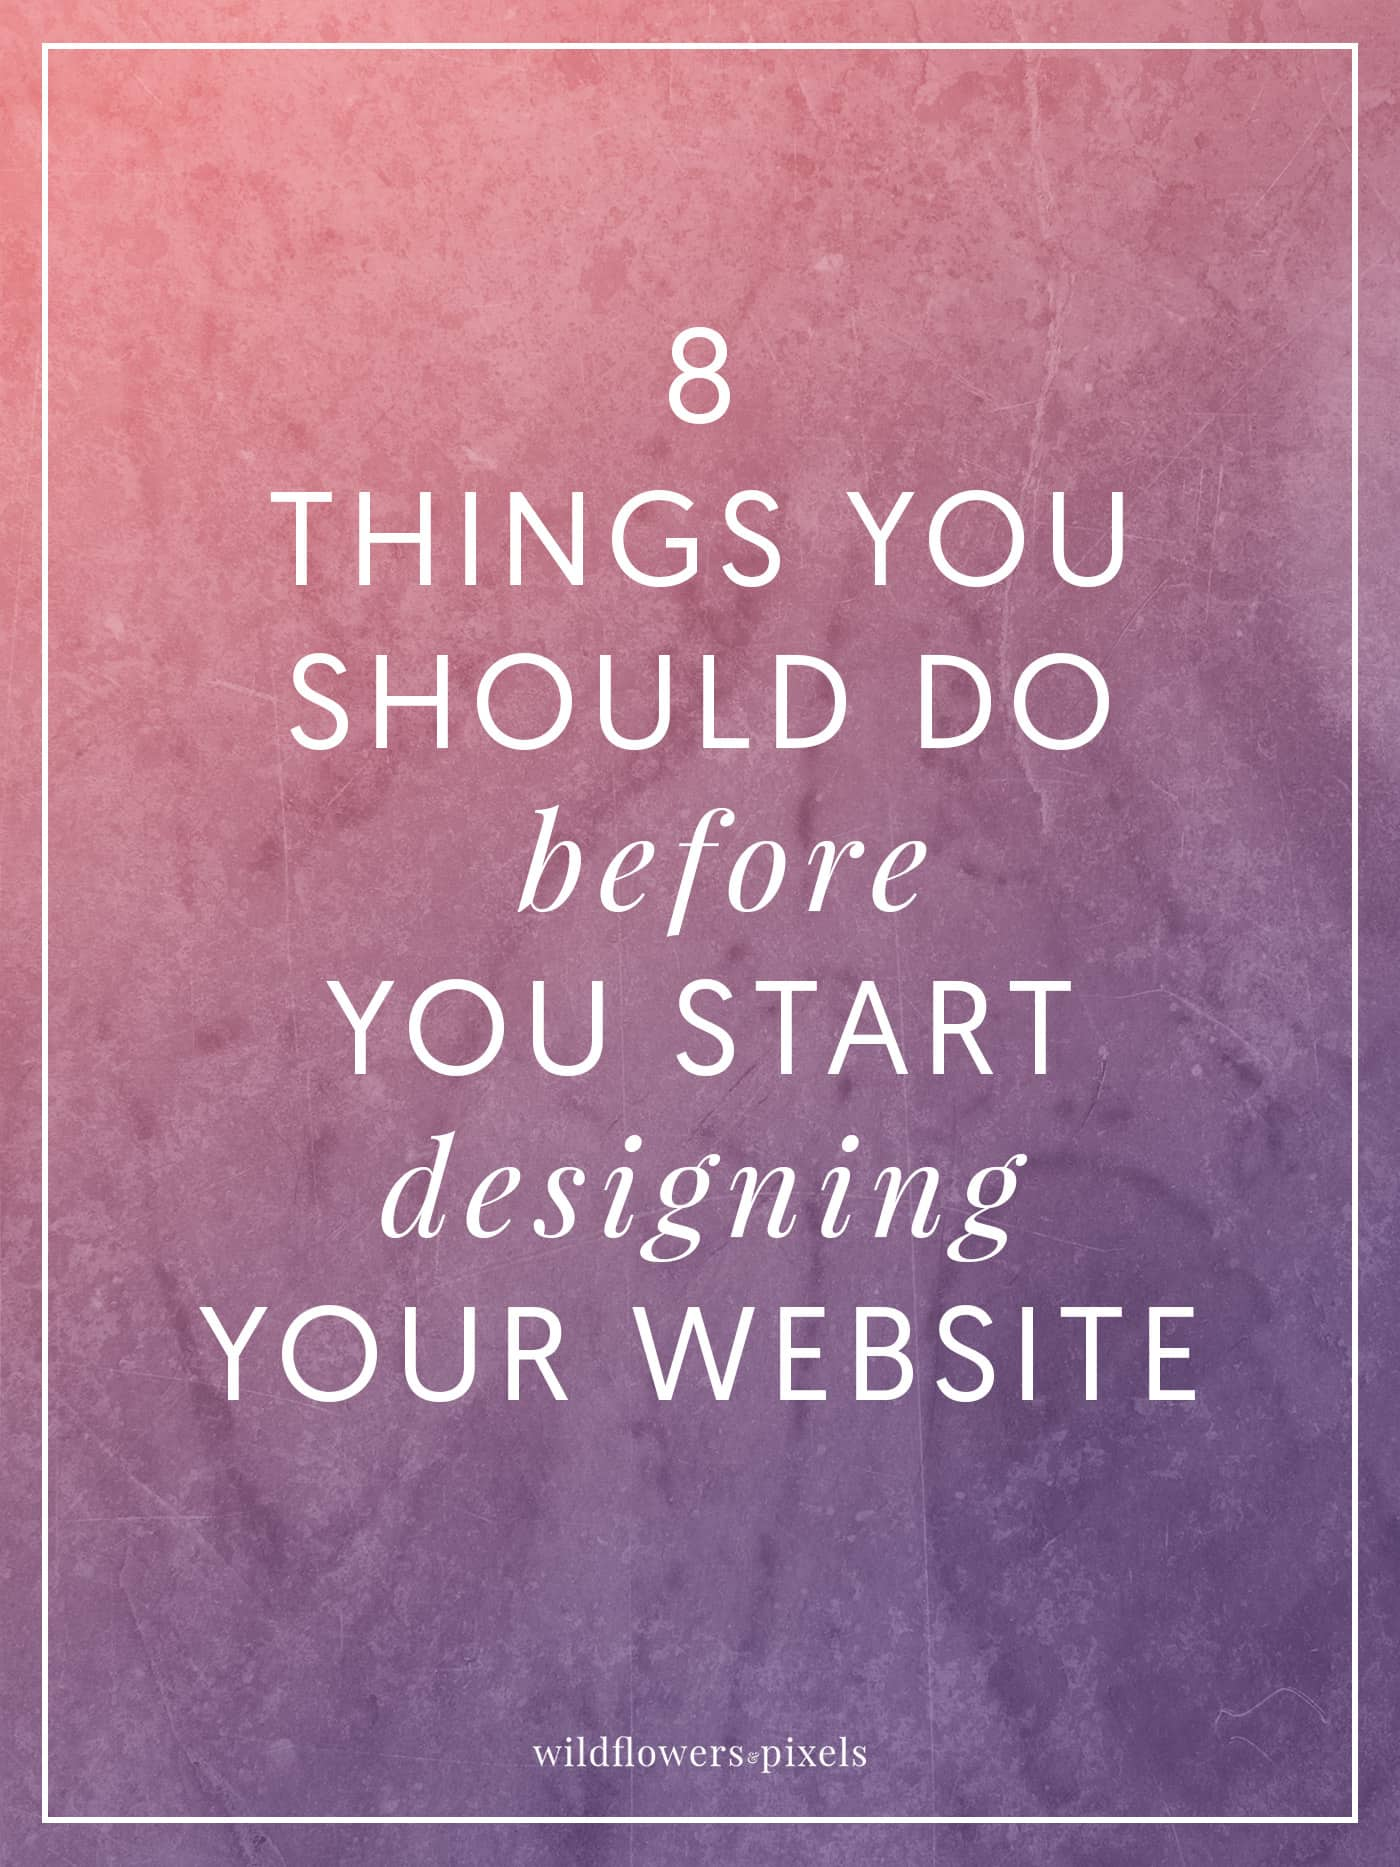 8 Things You Should Do Before You Start Designing Your Website - Getting ready to design your website? Here is 8 things you should do before you start designing.